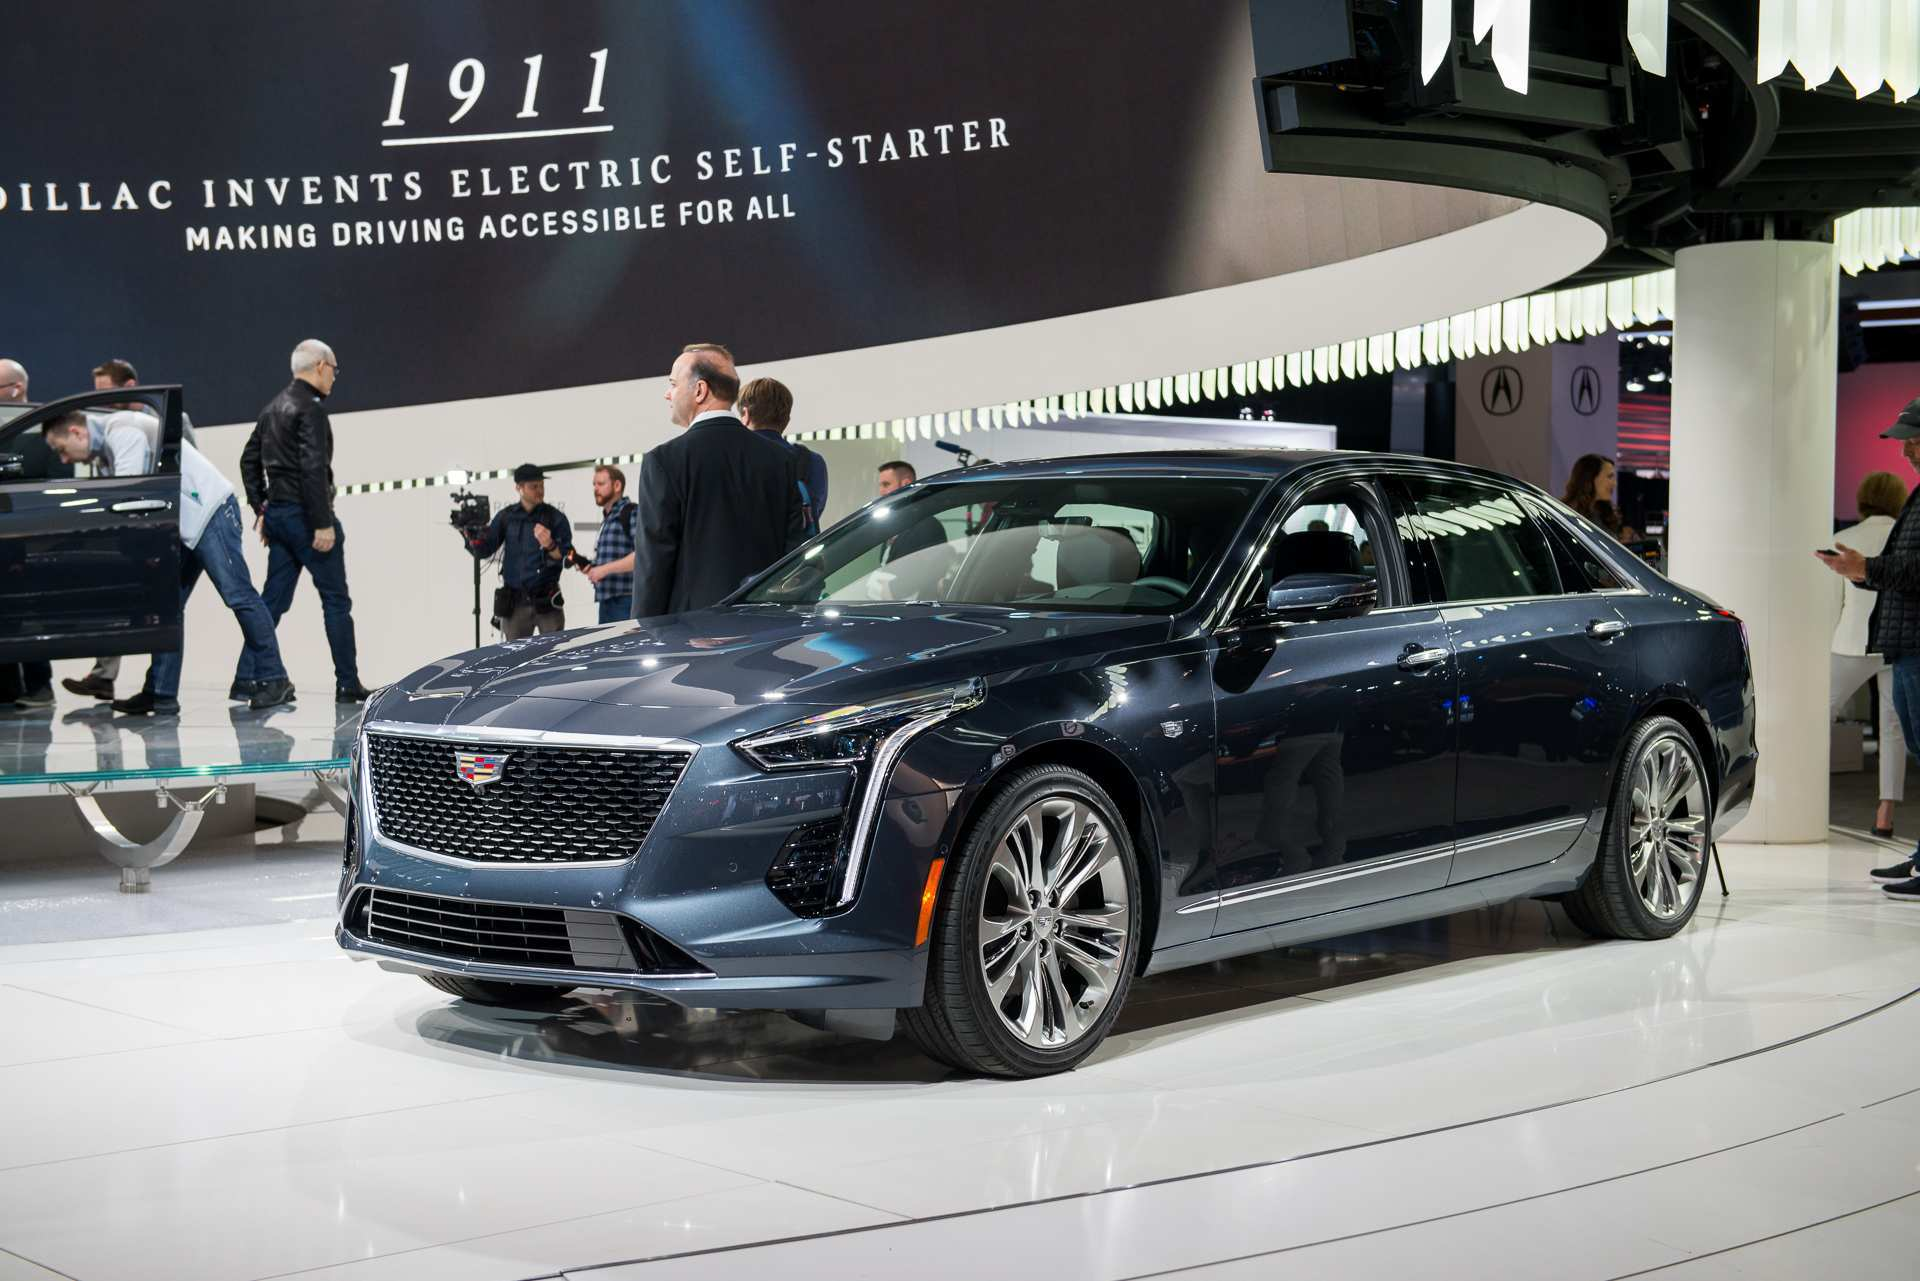 33 All New 2019 Cadillac Ct6 Pictures with 2019 Cadillac Ct6